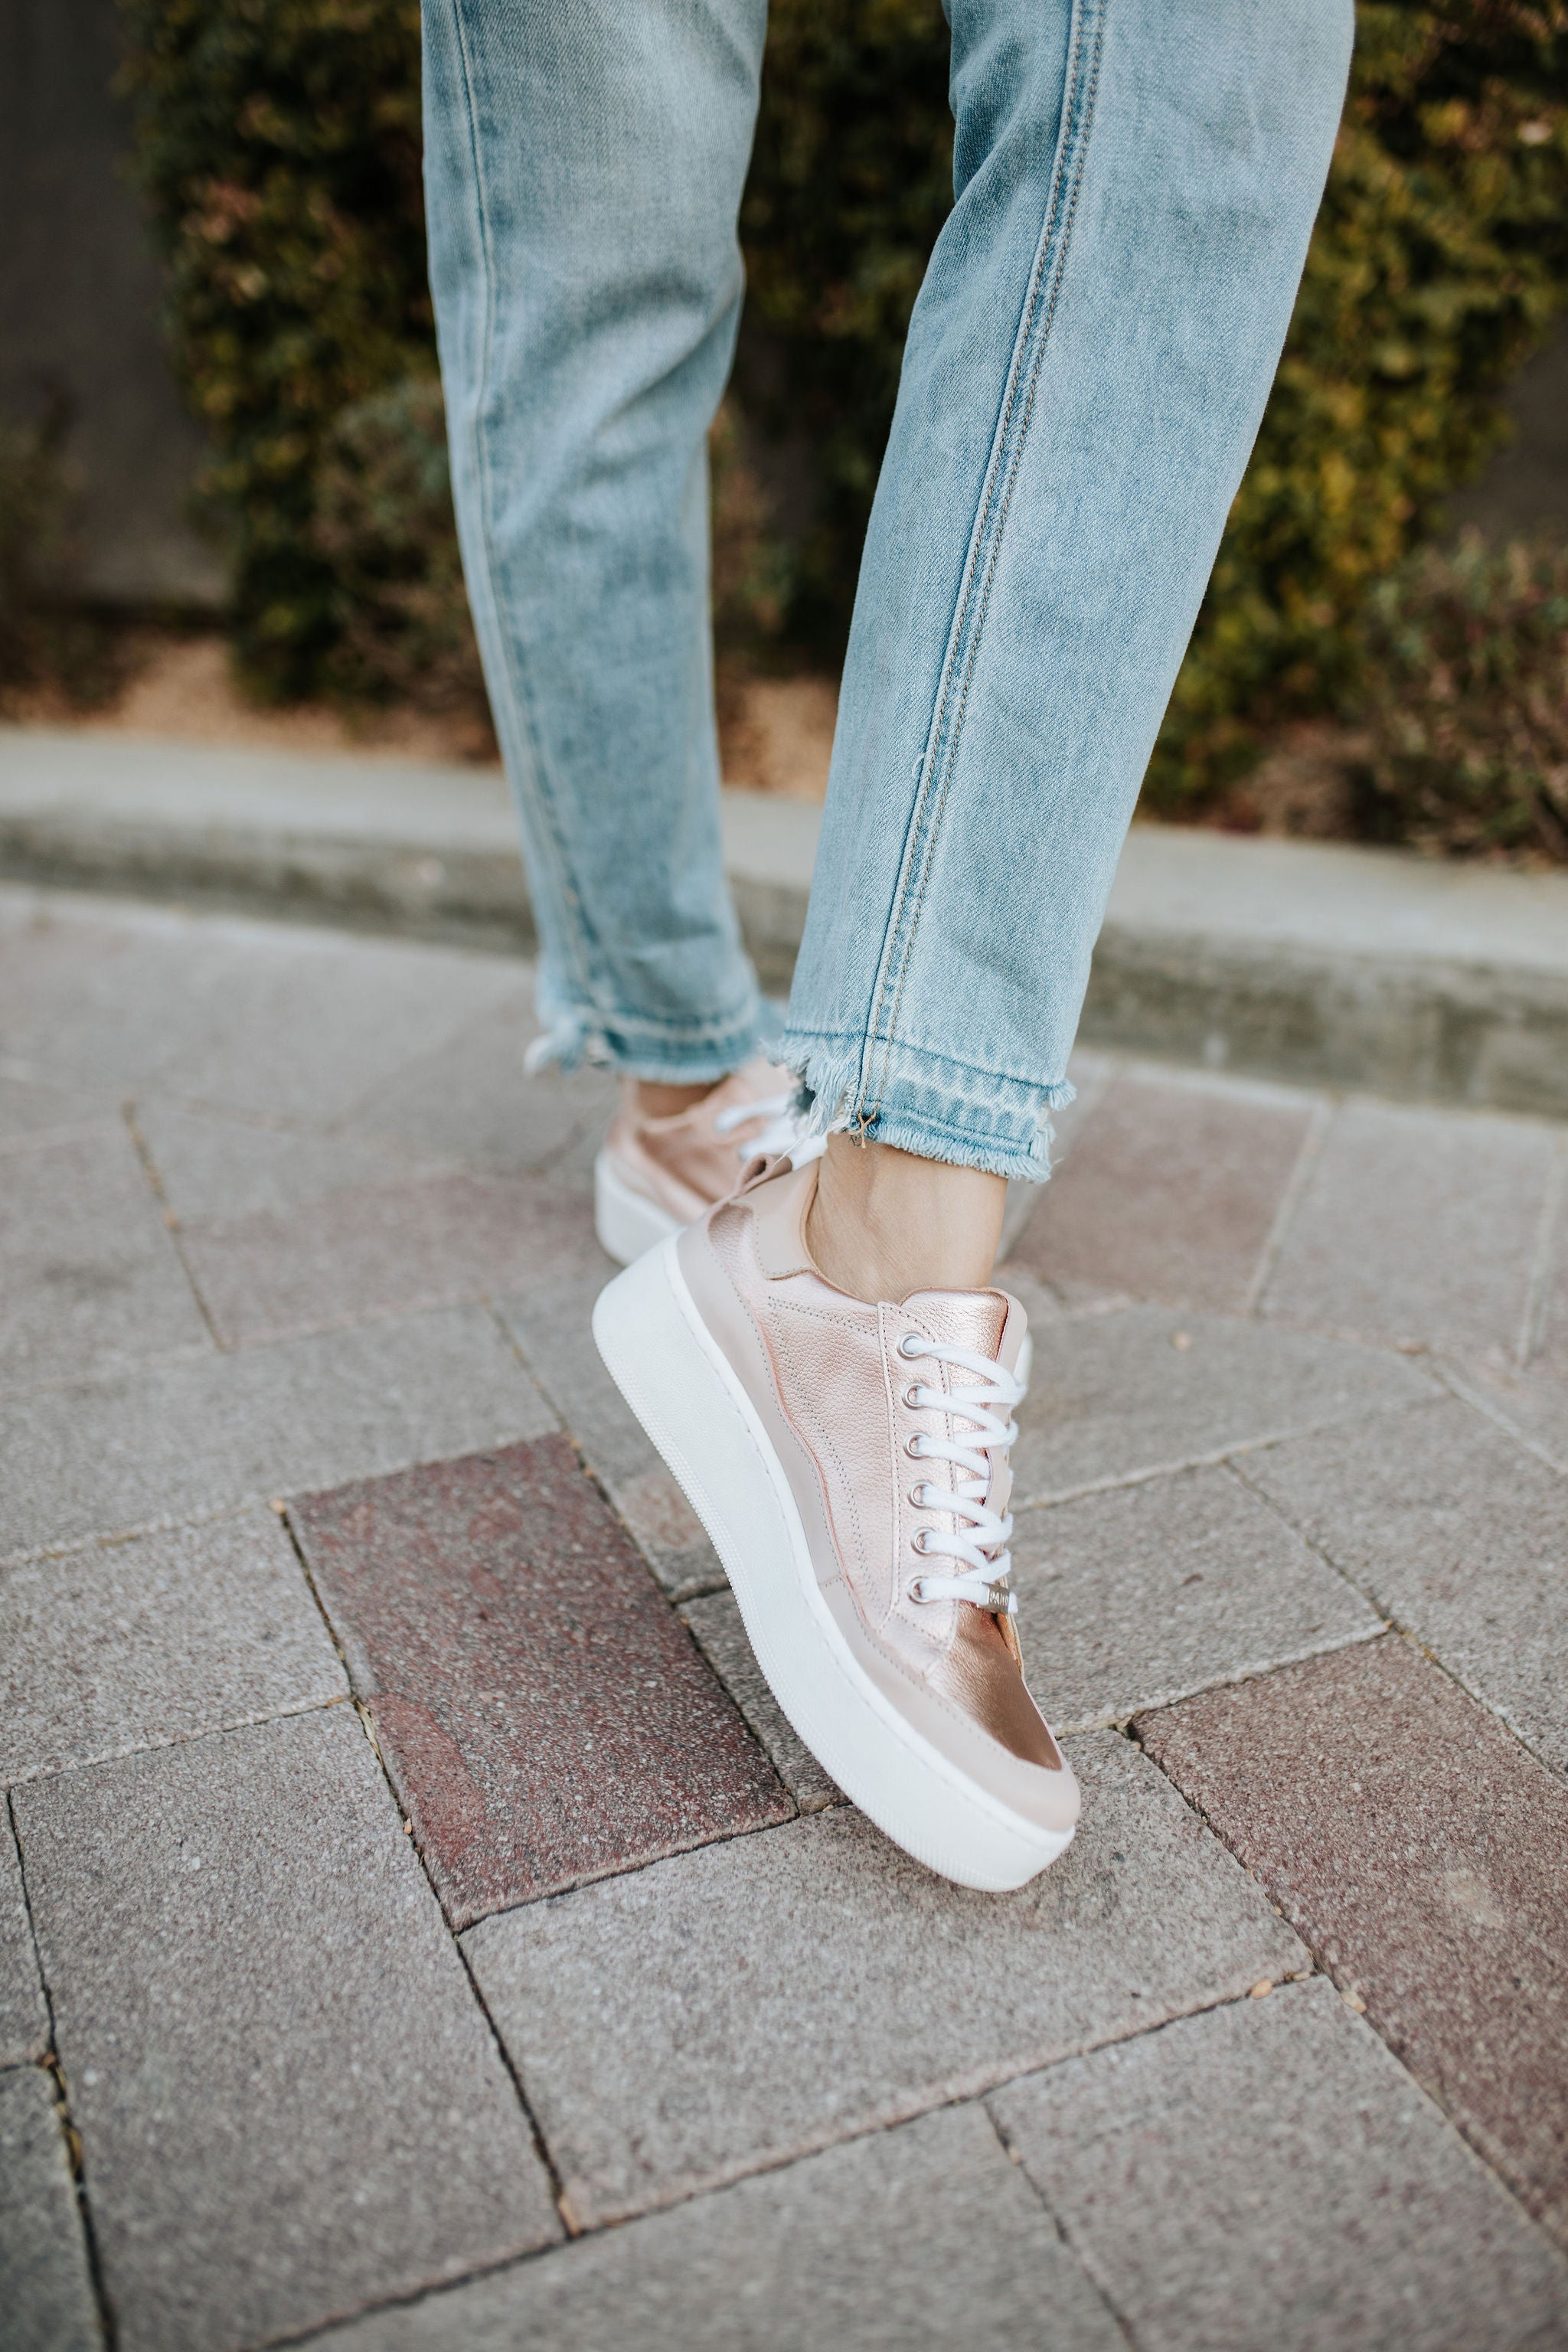 THE ESMI PLATFORM SNEAKER IN ROSE GOLD